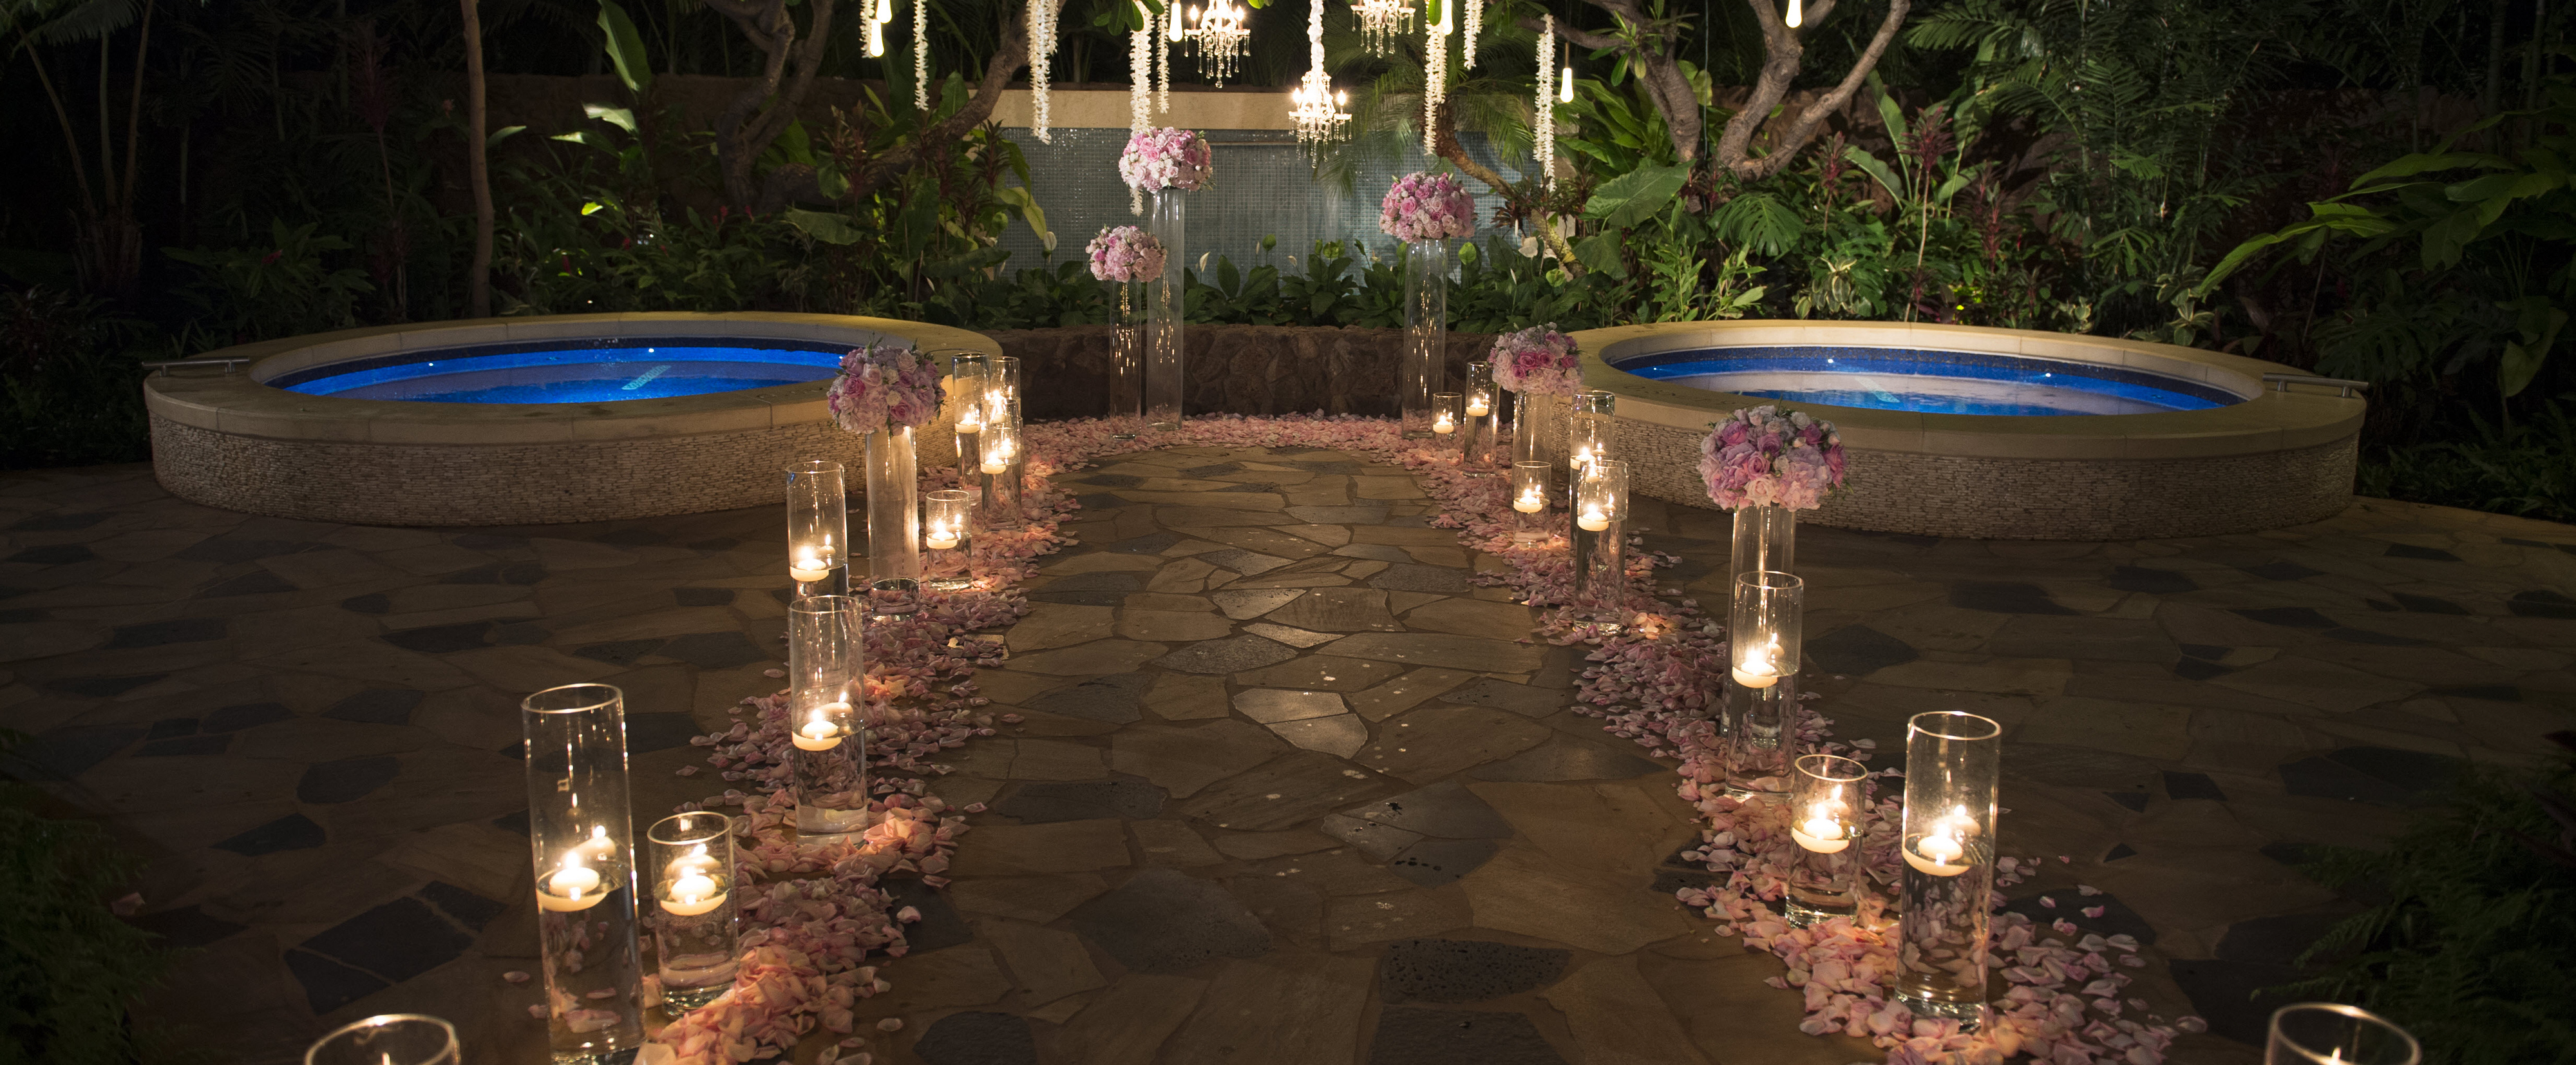 An evening garden setting with 2 round pools and an aisle lined with rose petals, bouquets and floating candles